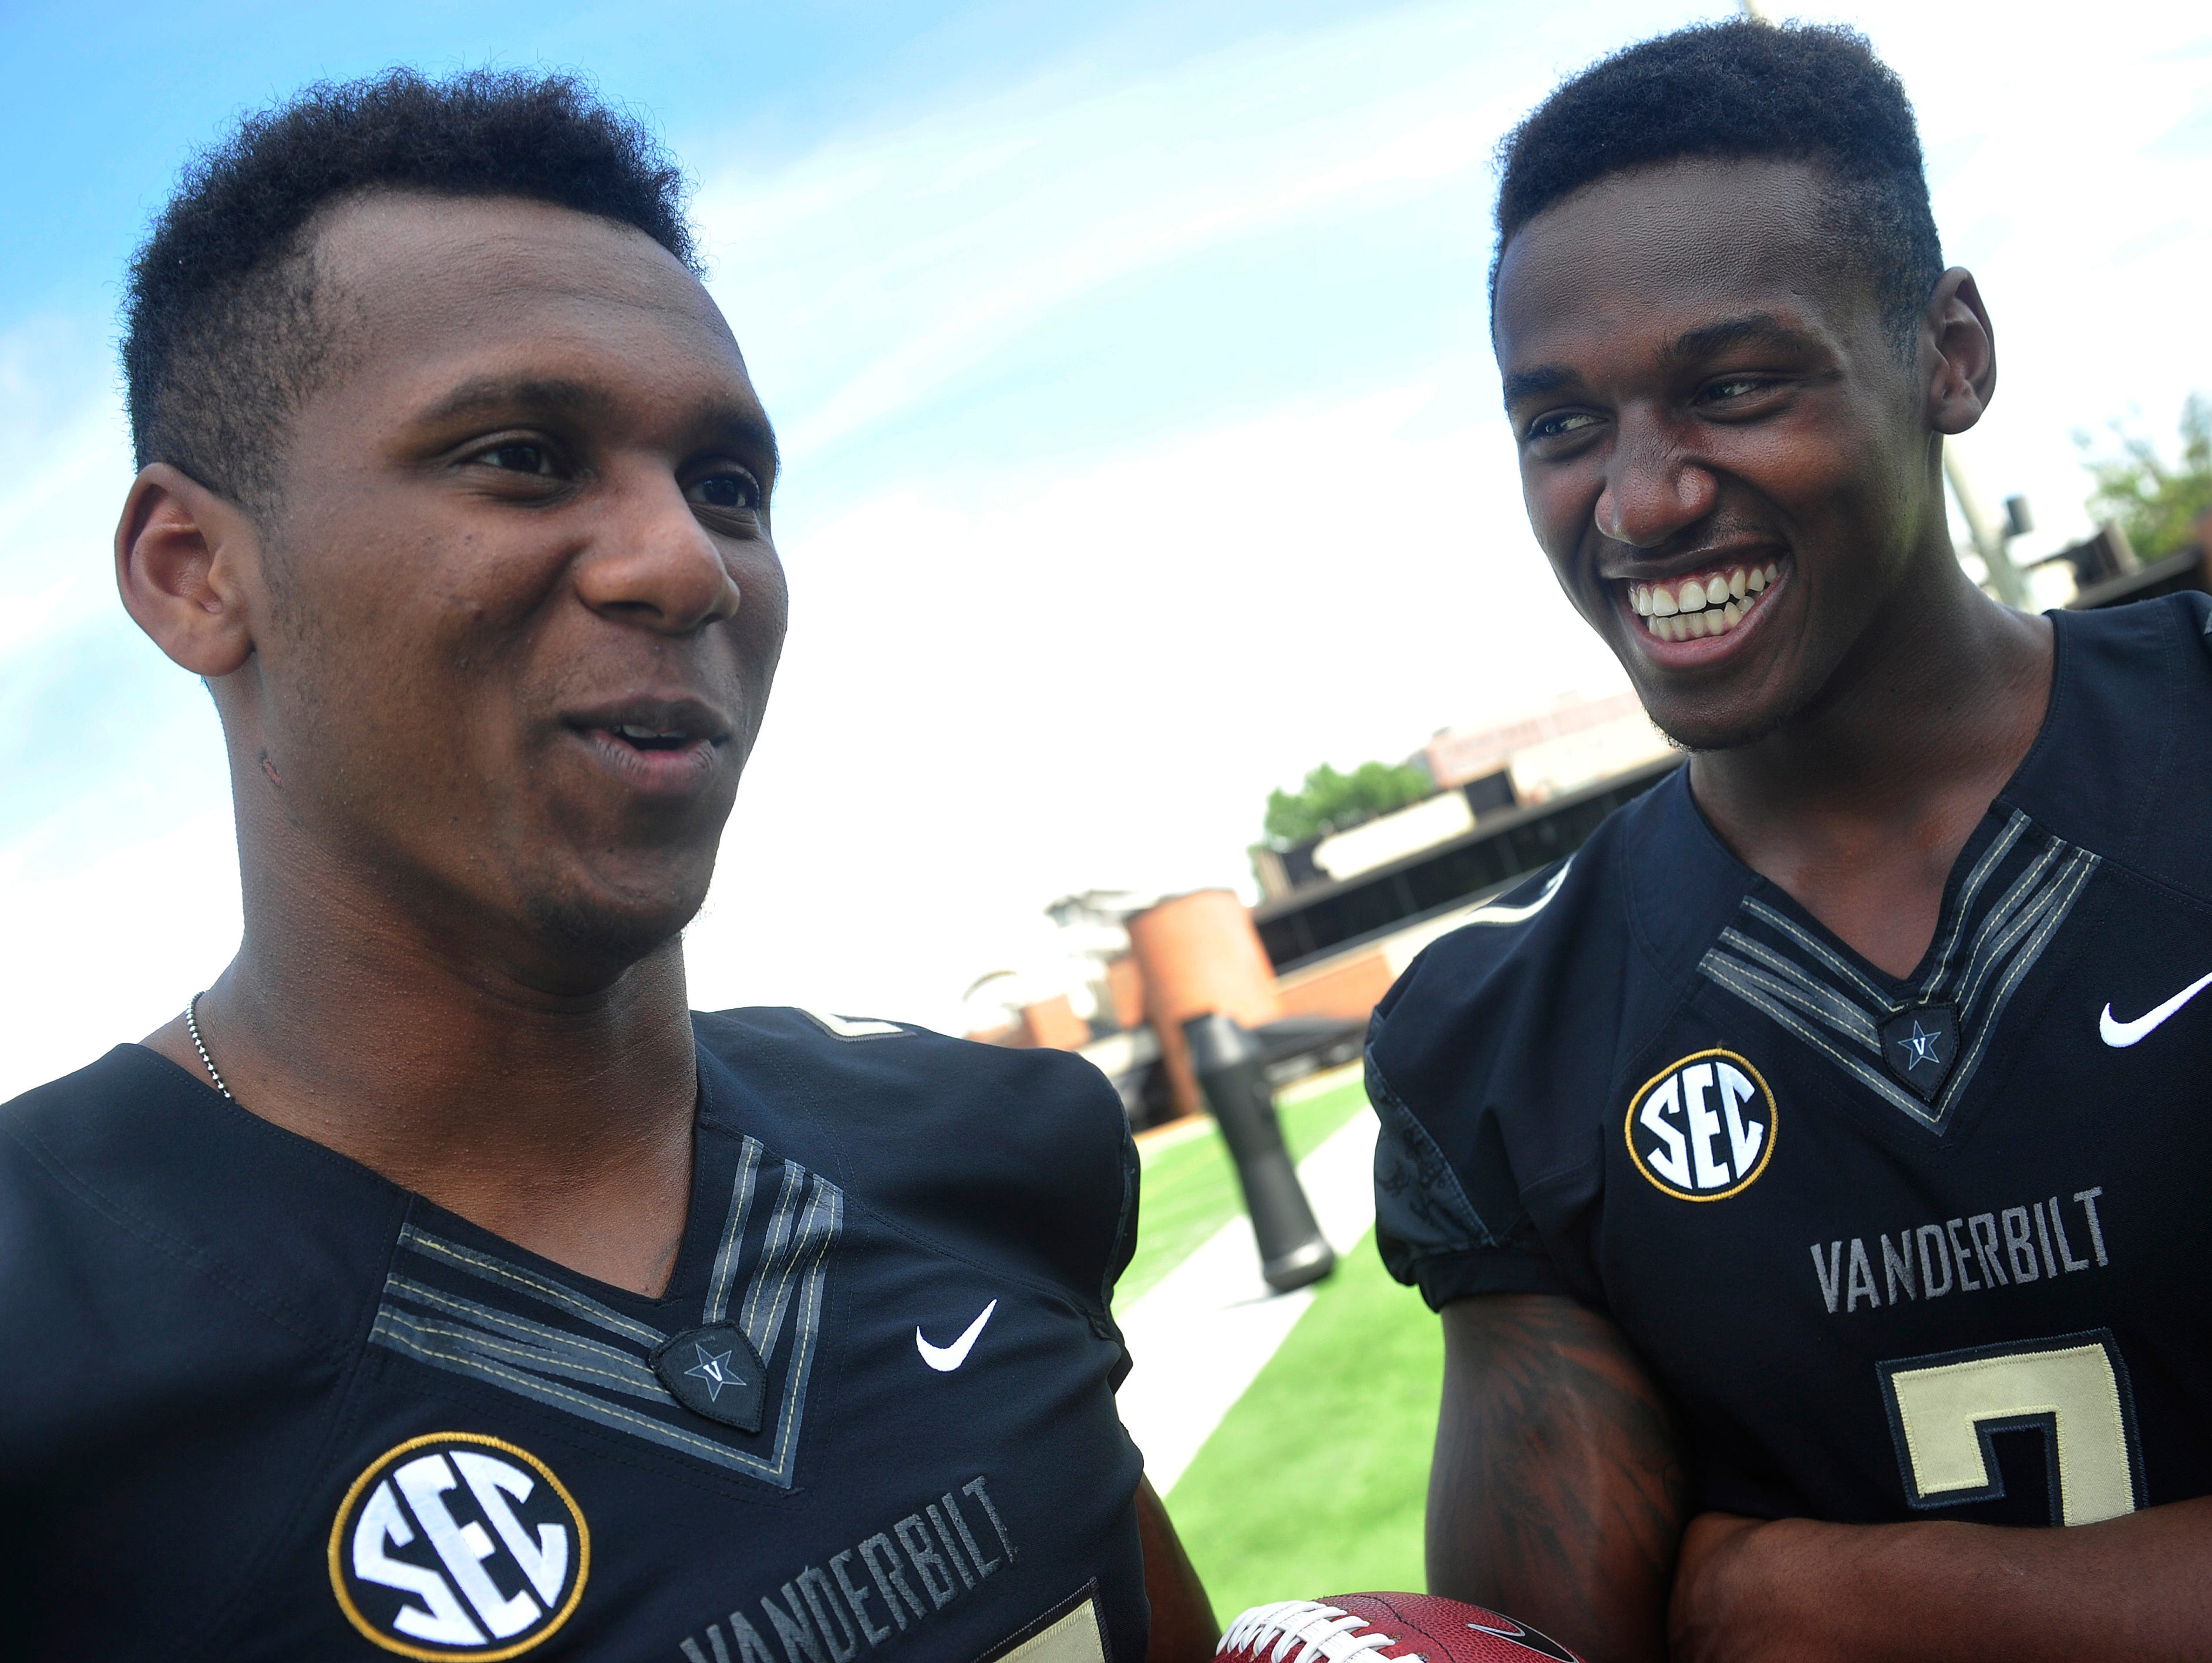 Brothers Josh Smith, left, and Emmanuel Smith talk about growing up in Murfreesboro, playing at Oakland High School and winding up together at Vanderbilt.